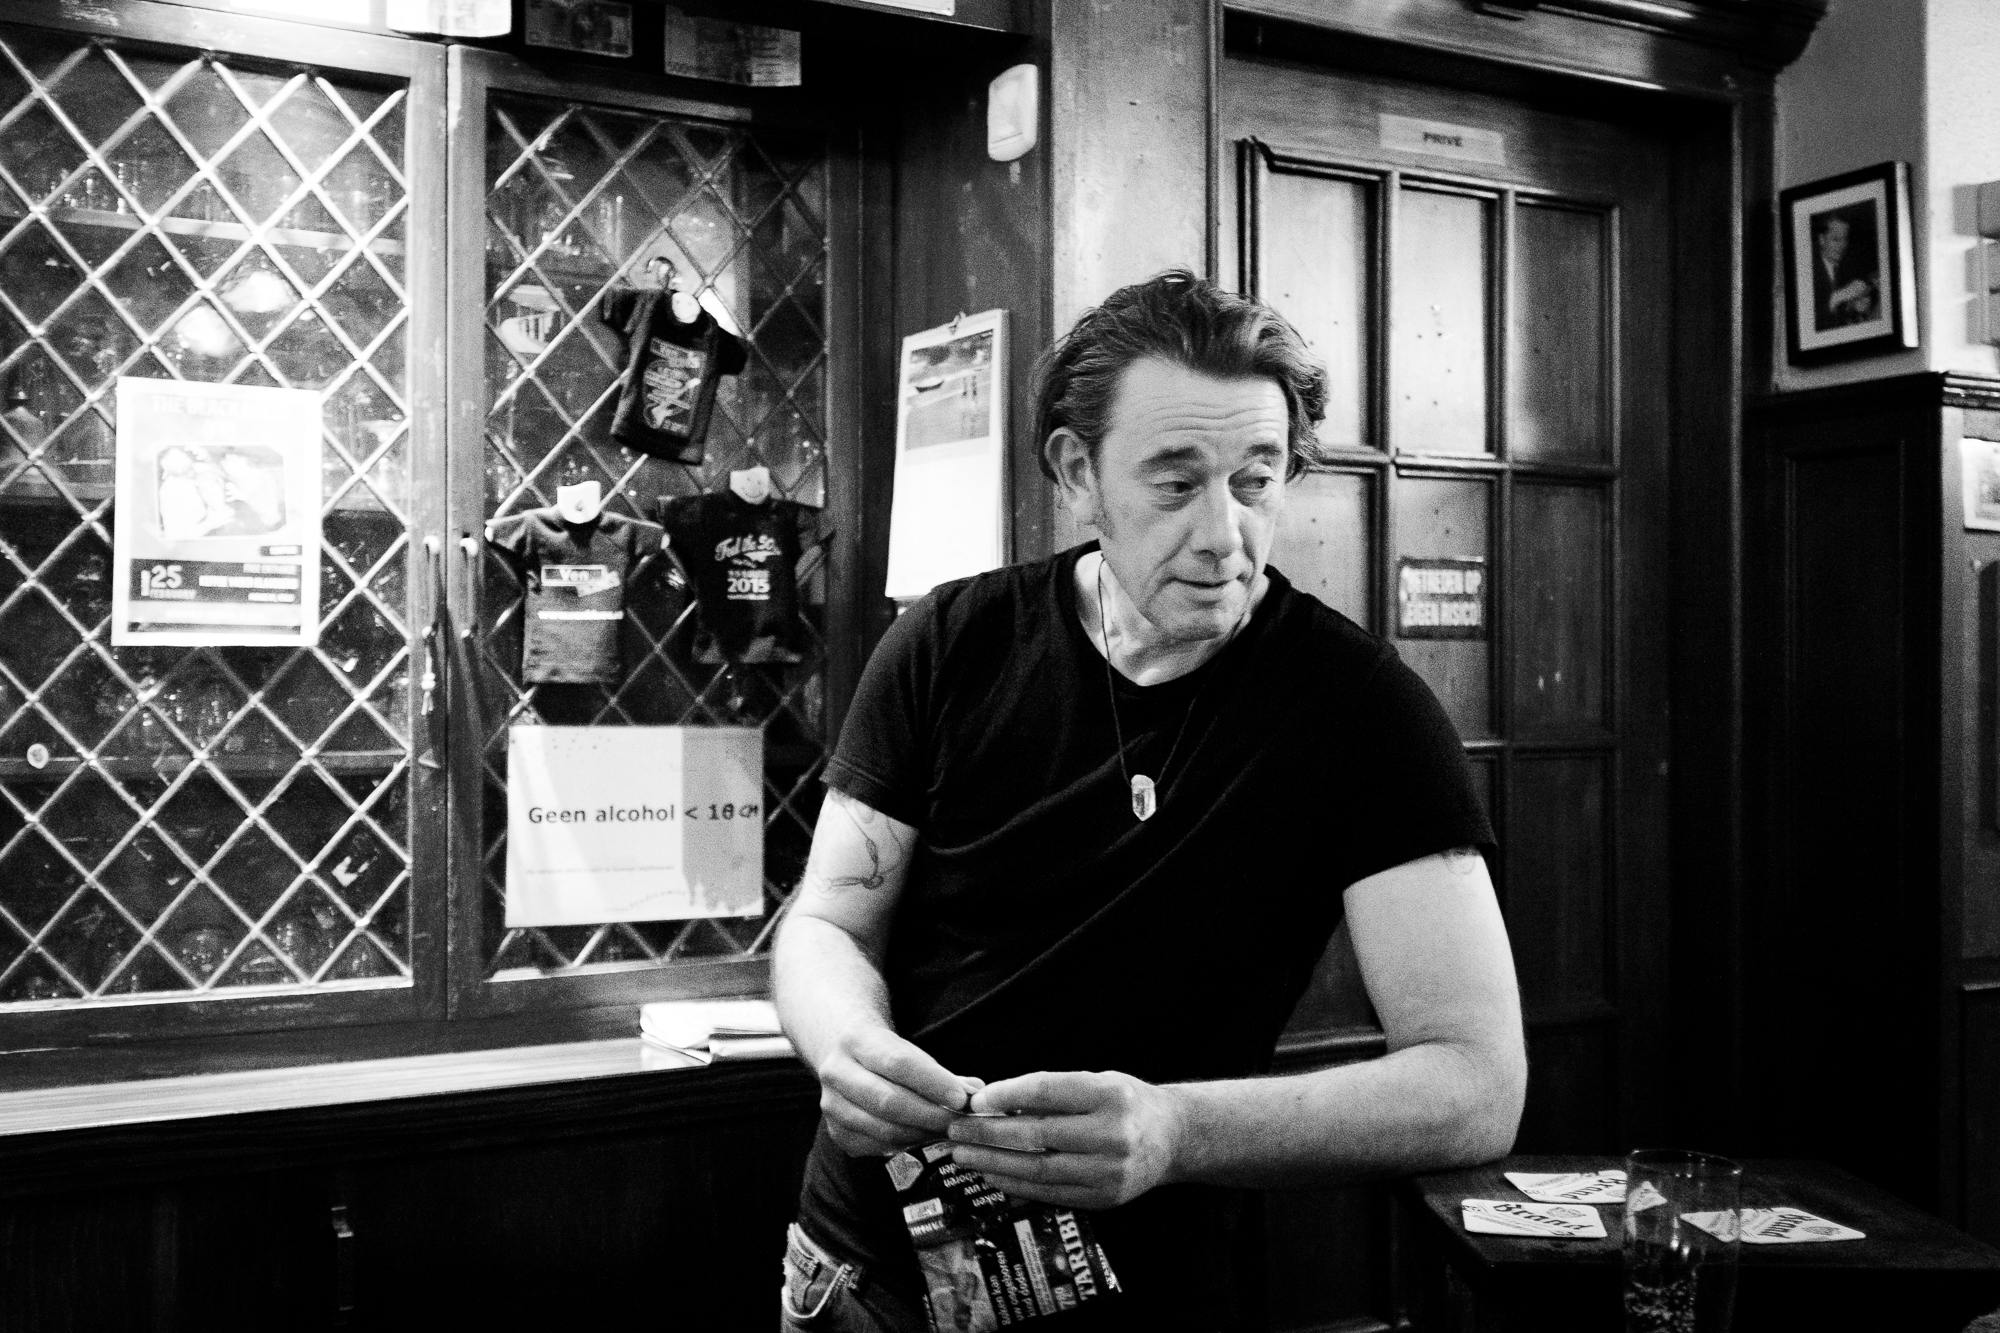 Bartender rolling a cigarette while in conversation